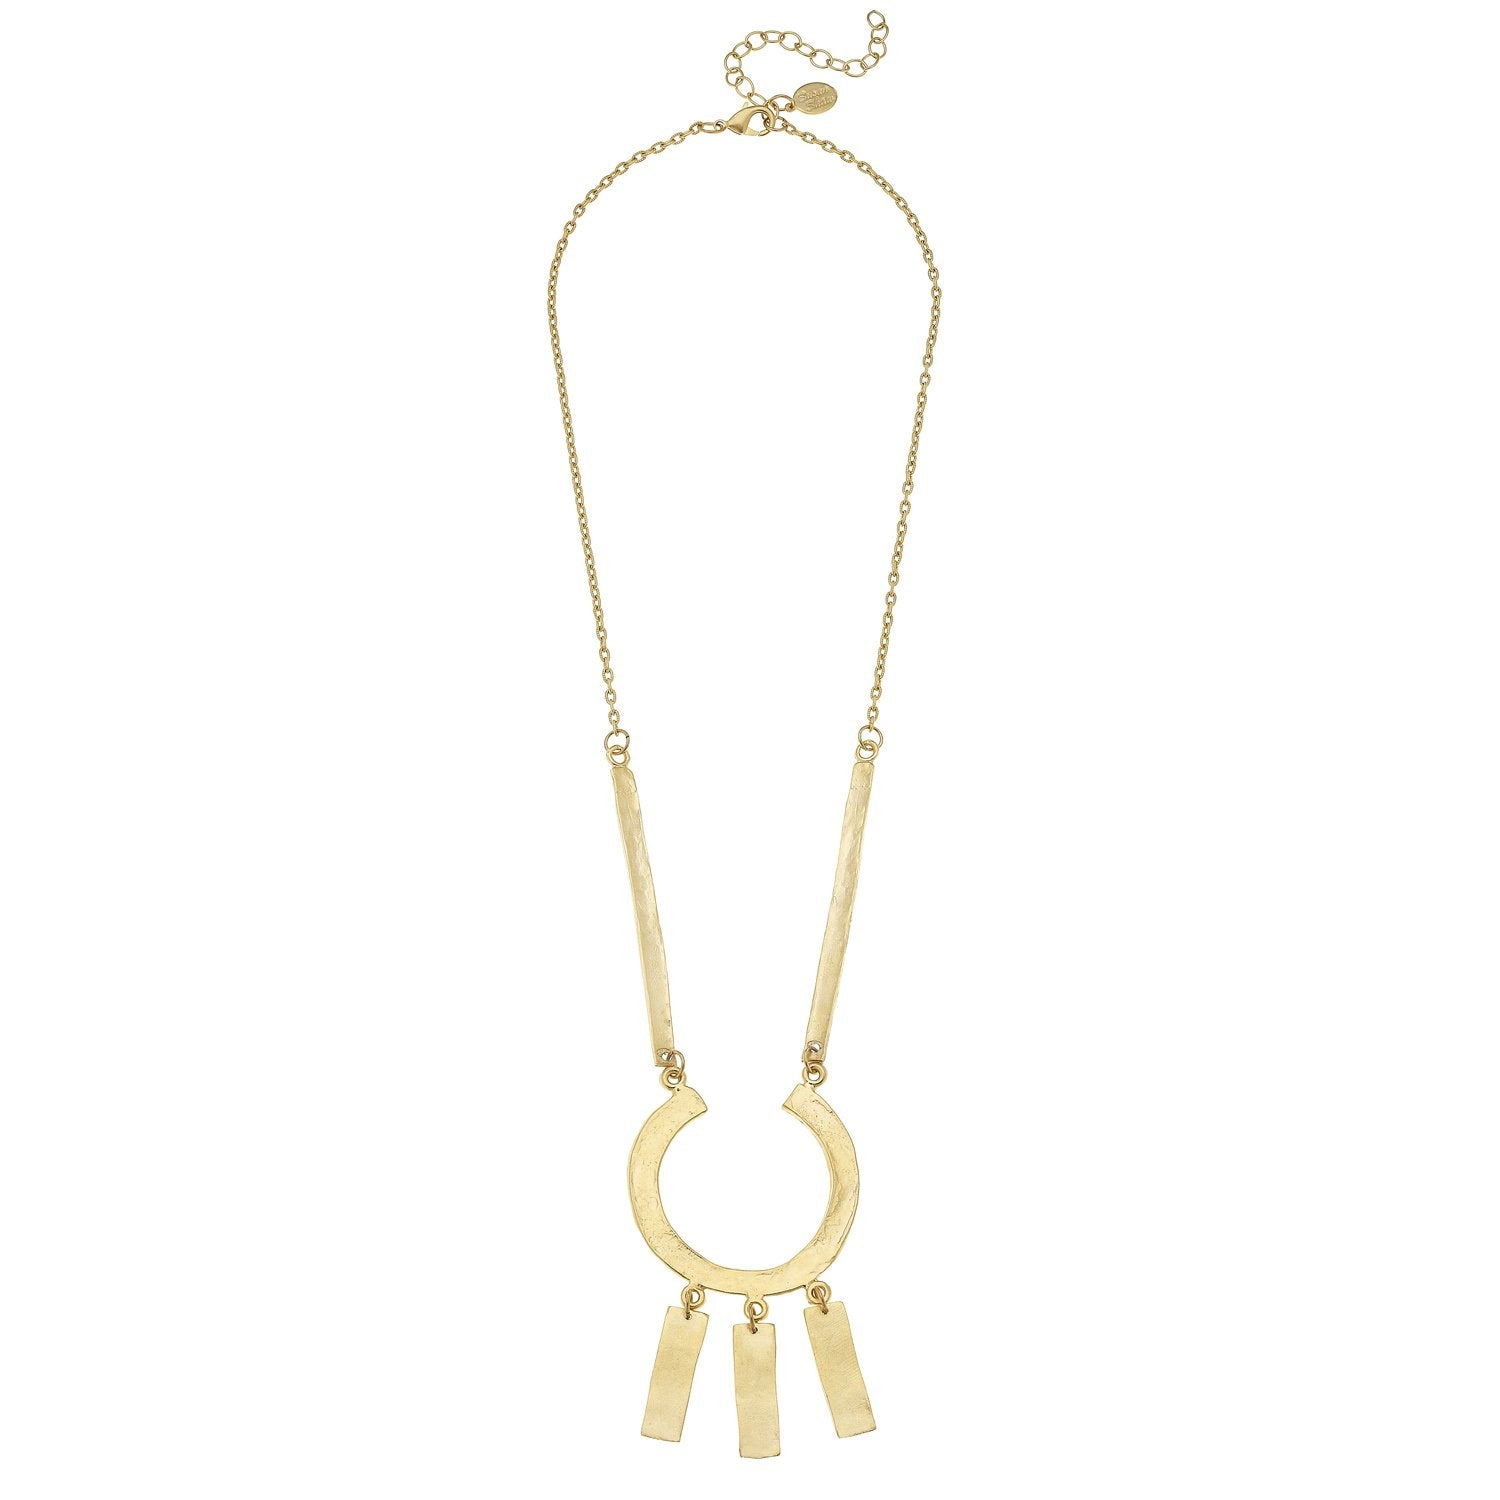 Susan Shaw Handcast Gold Geometric Bar Chain Necklace